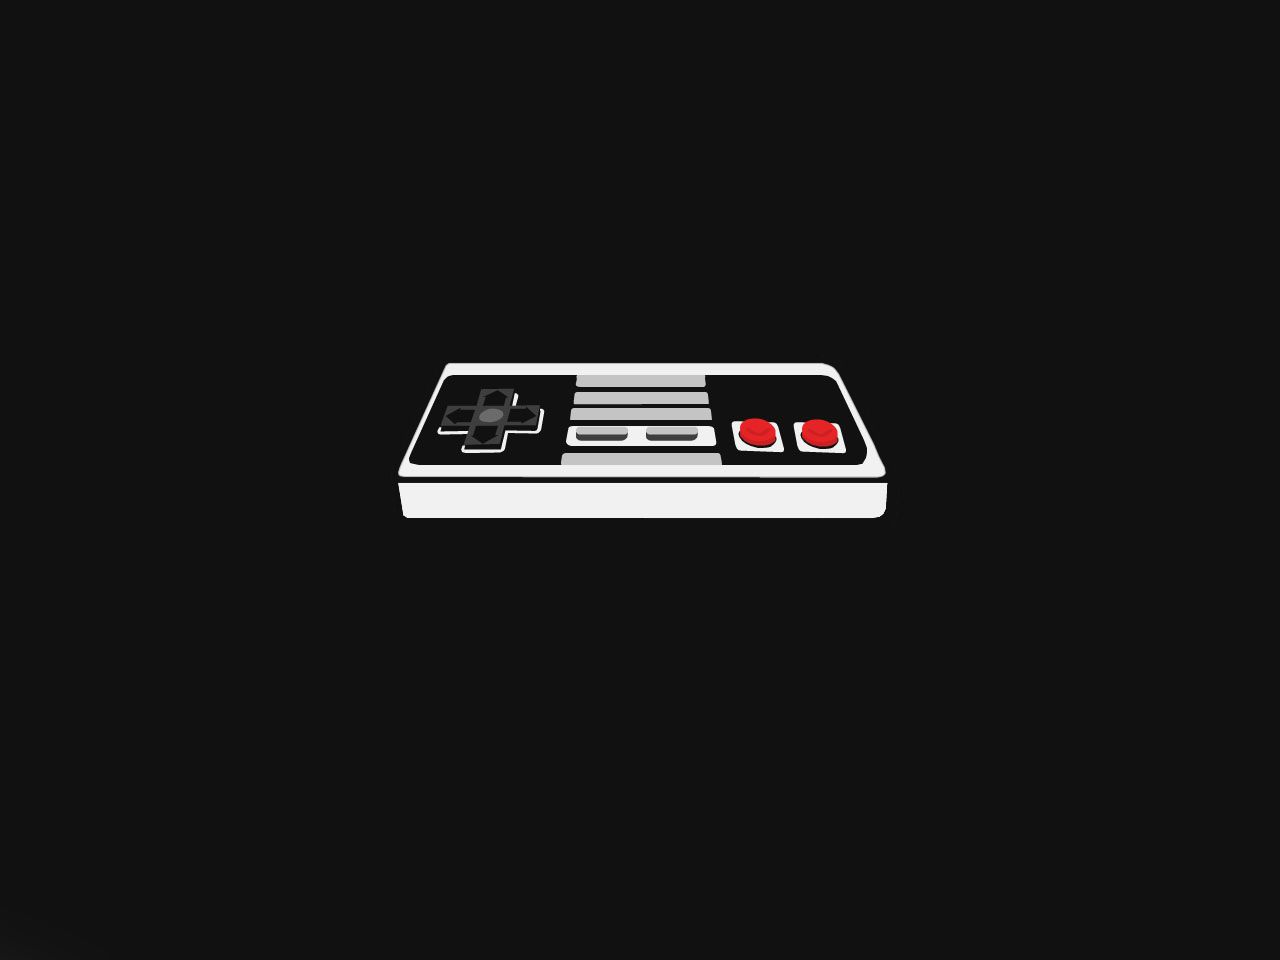 1280x960 Nintendo Entertainment System Wallpaper and Background Image ...